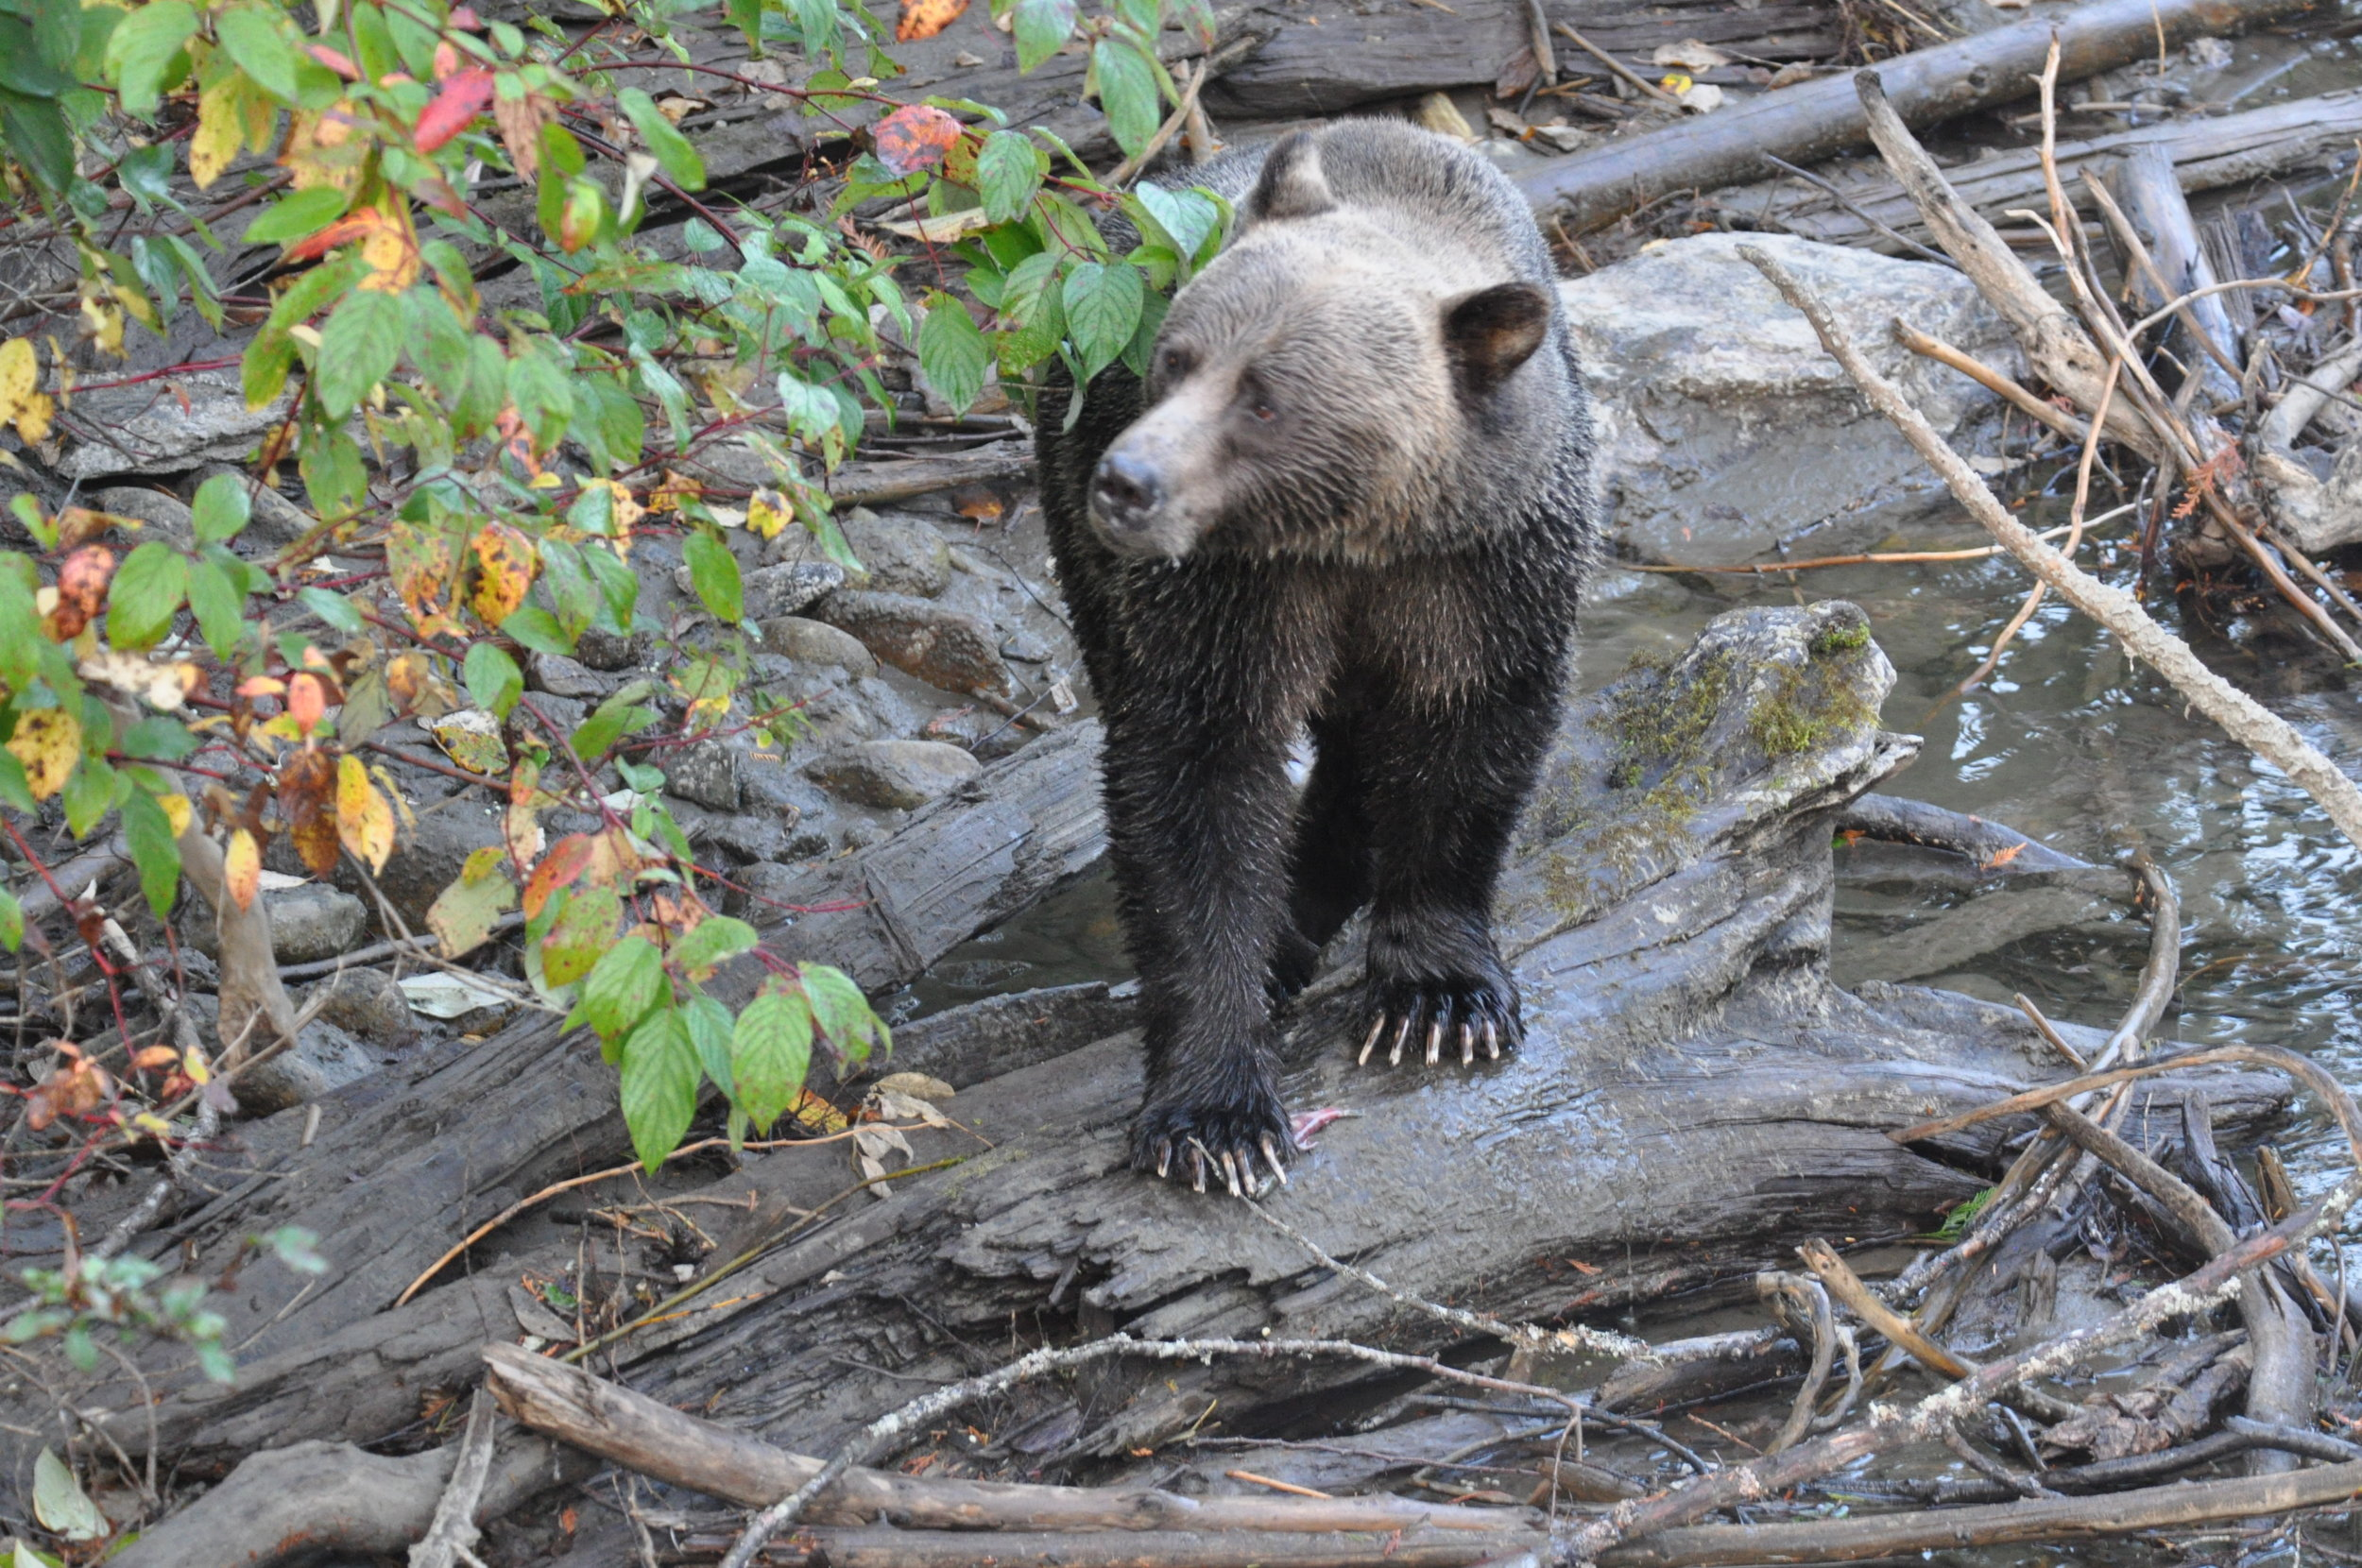 A Lardeau River Grizzly with a Kokanee Salmon underfoot.